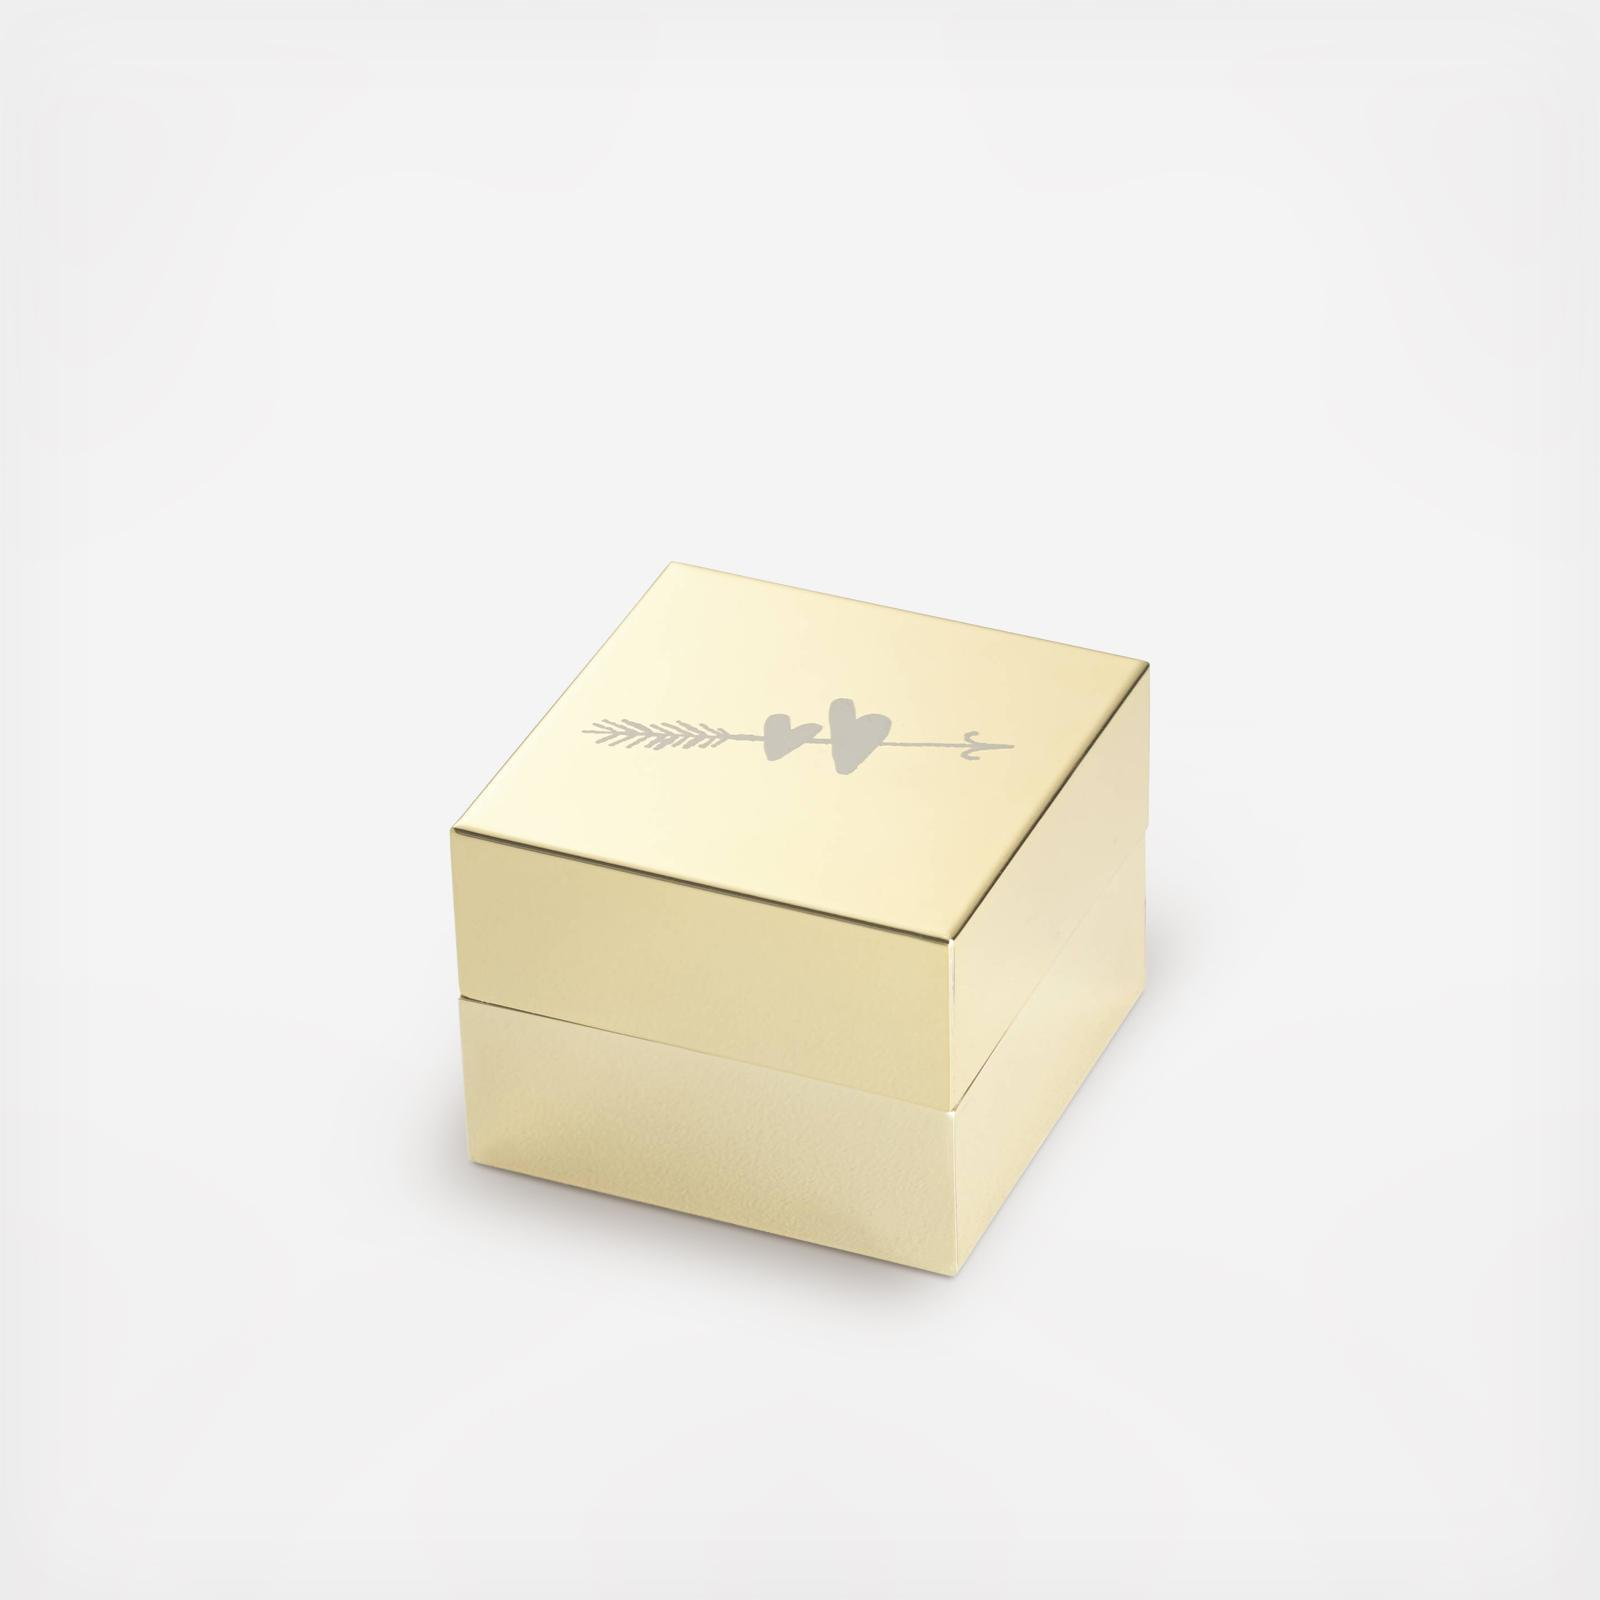 Bridal Ring Box By Kate Spade New York Wedding Planning Registry Gifts